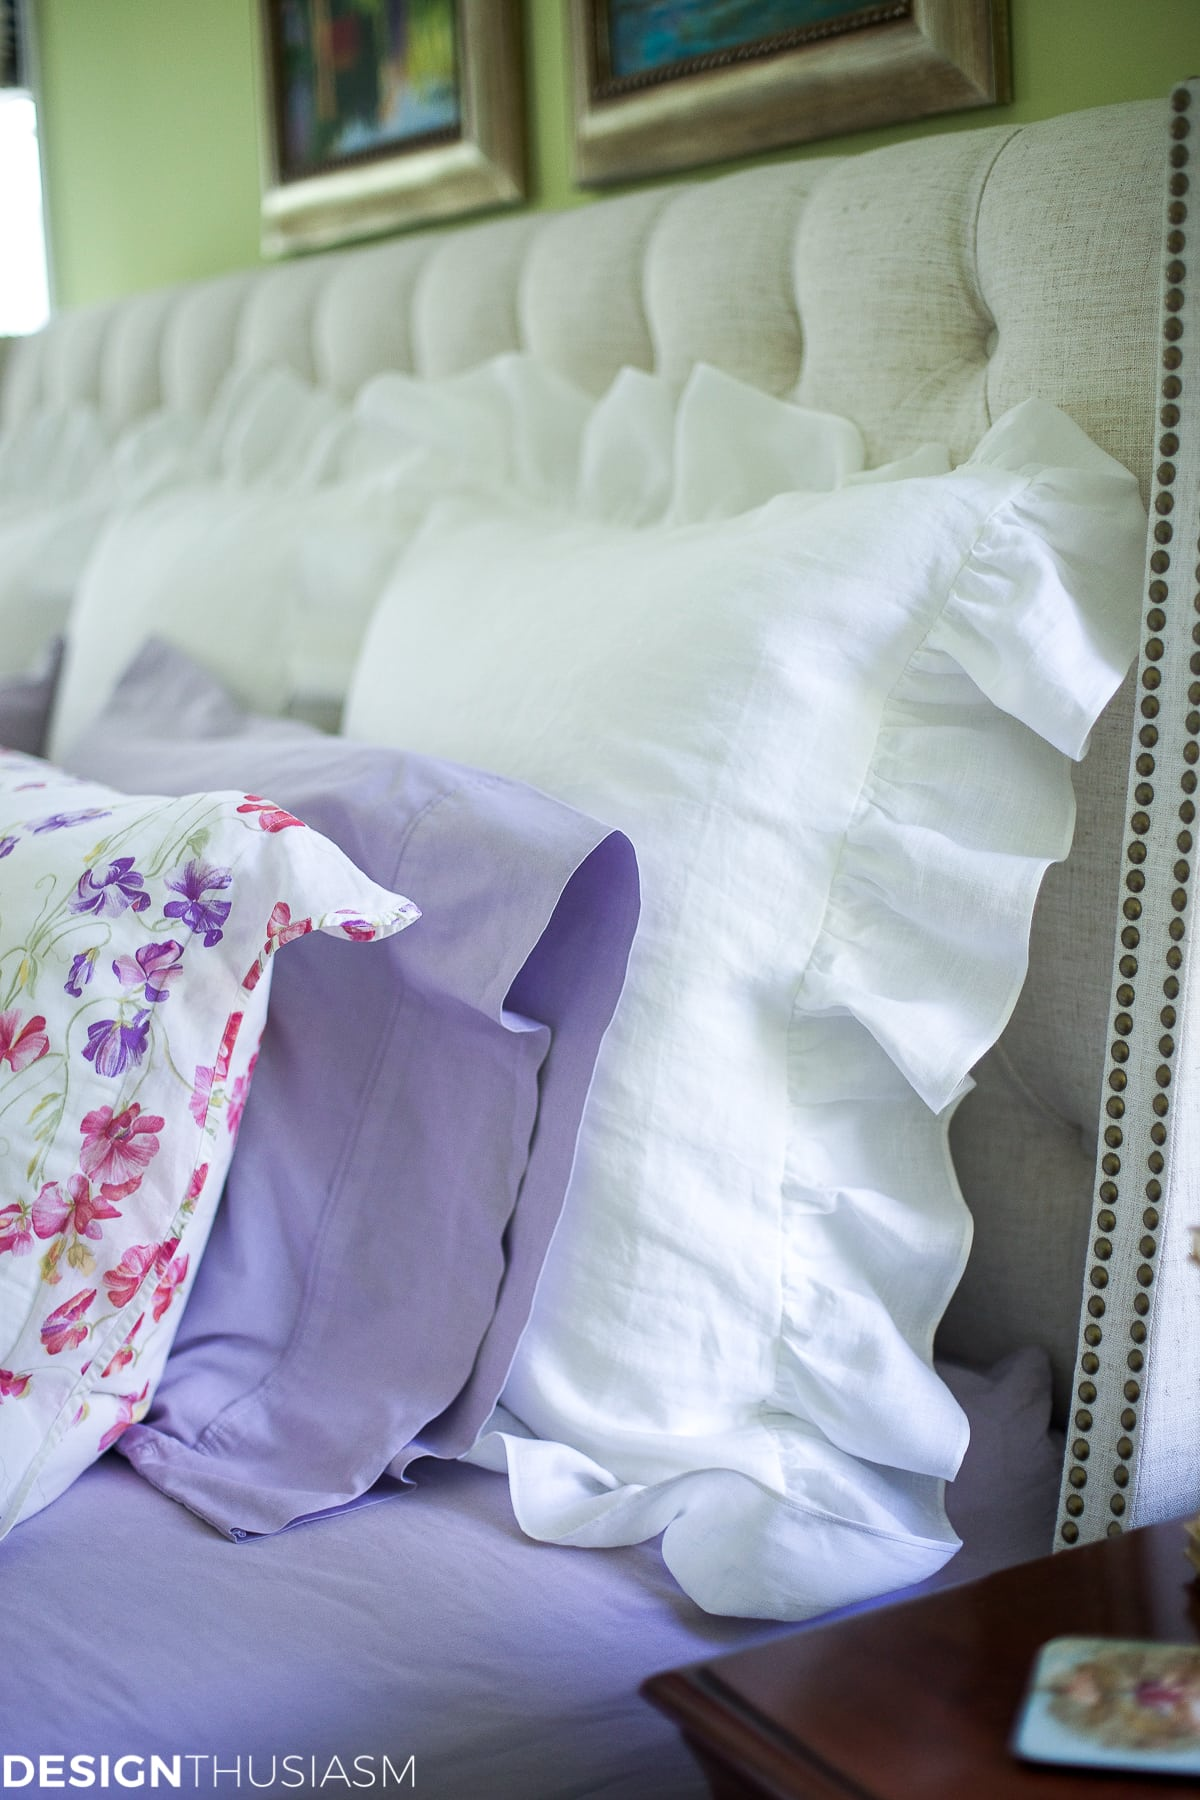 White linen pillow shams update the master bedroom - designthusiasm.com